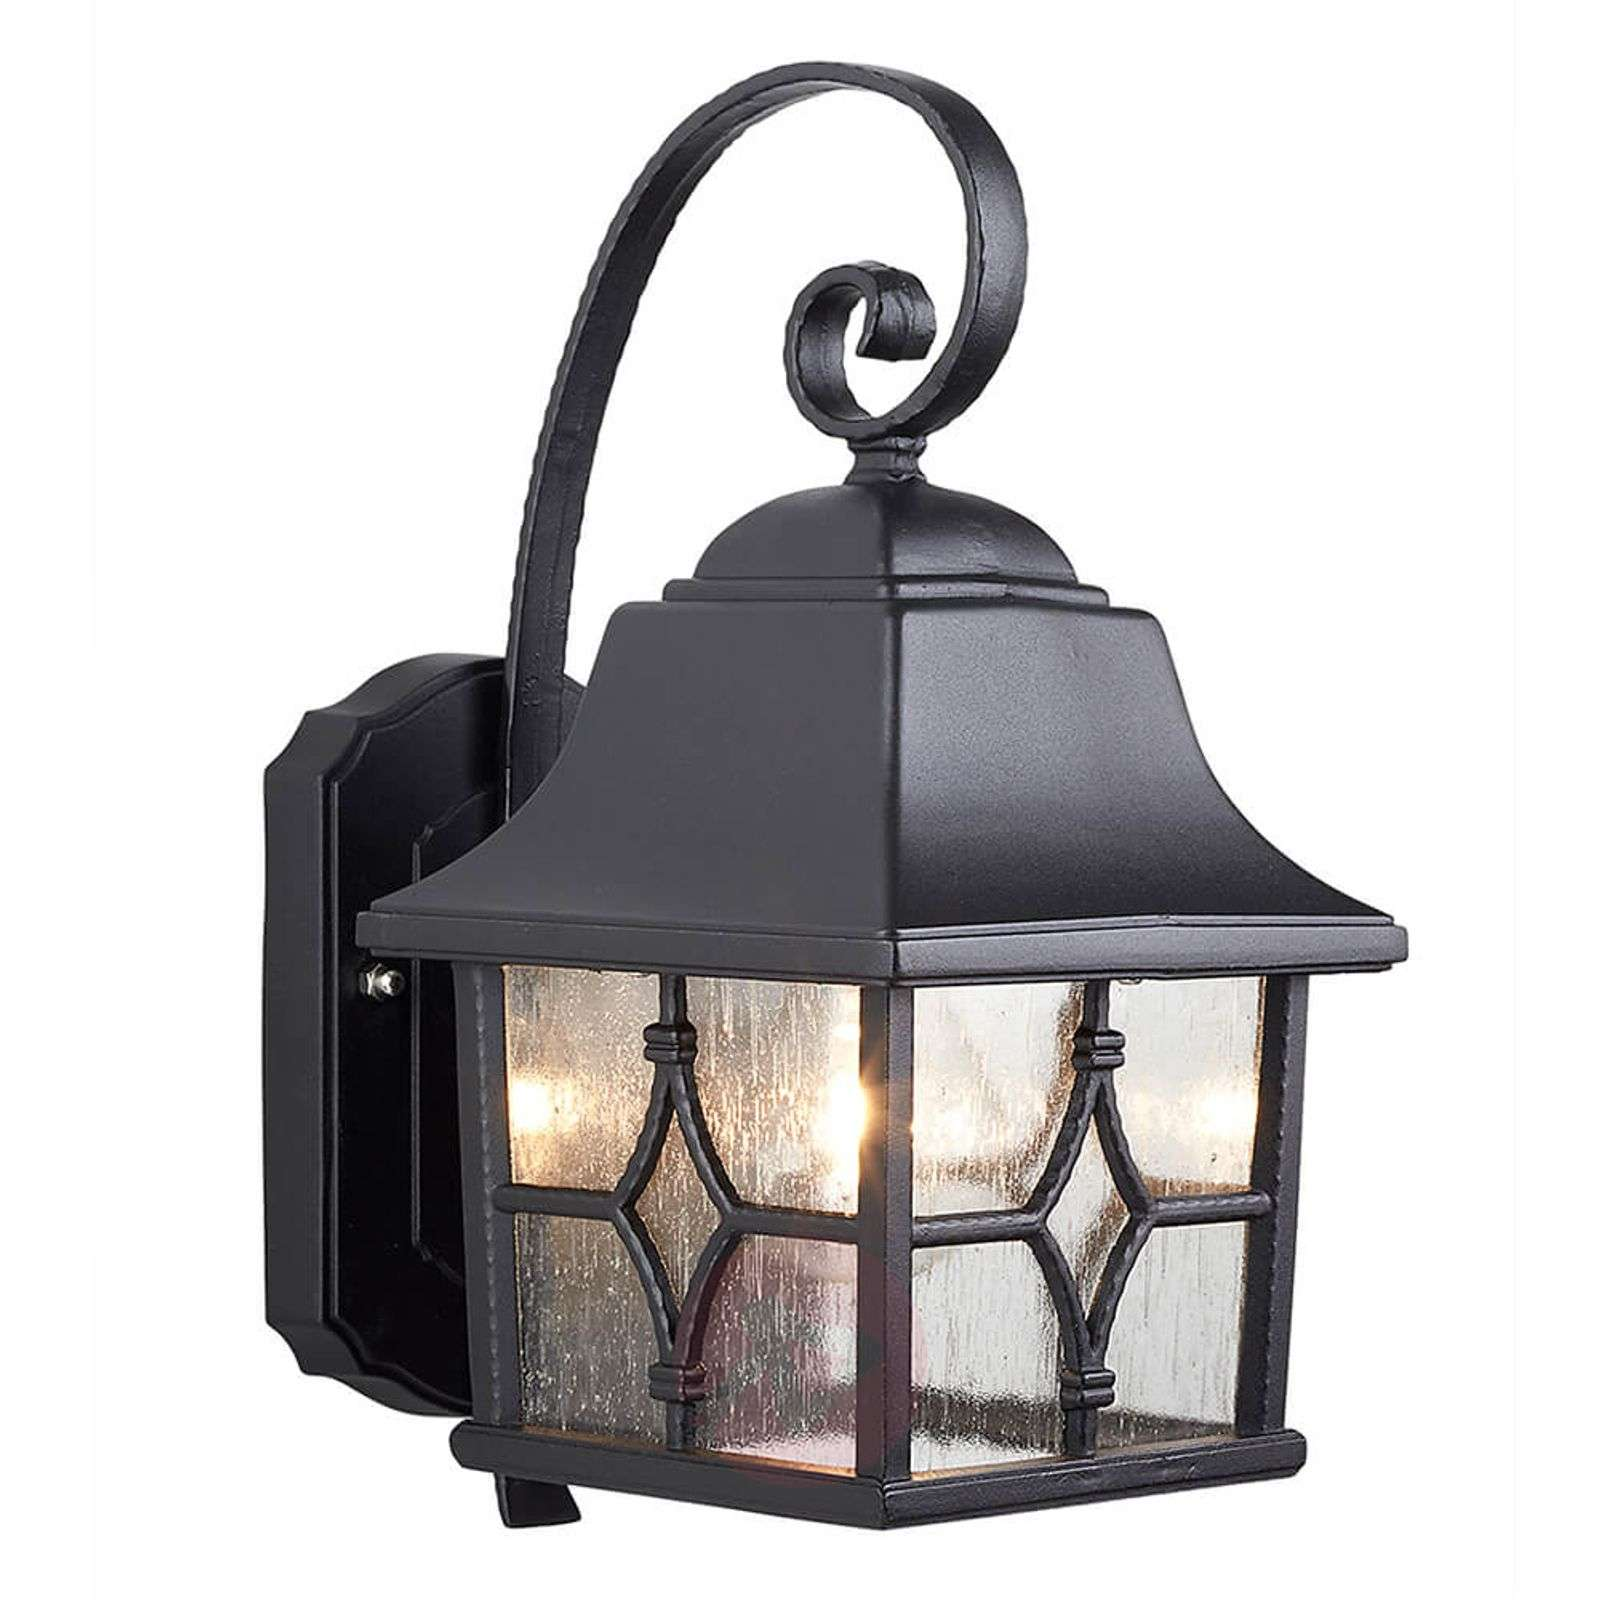 Decorative Kent outdoor wall light-3048701-01